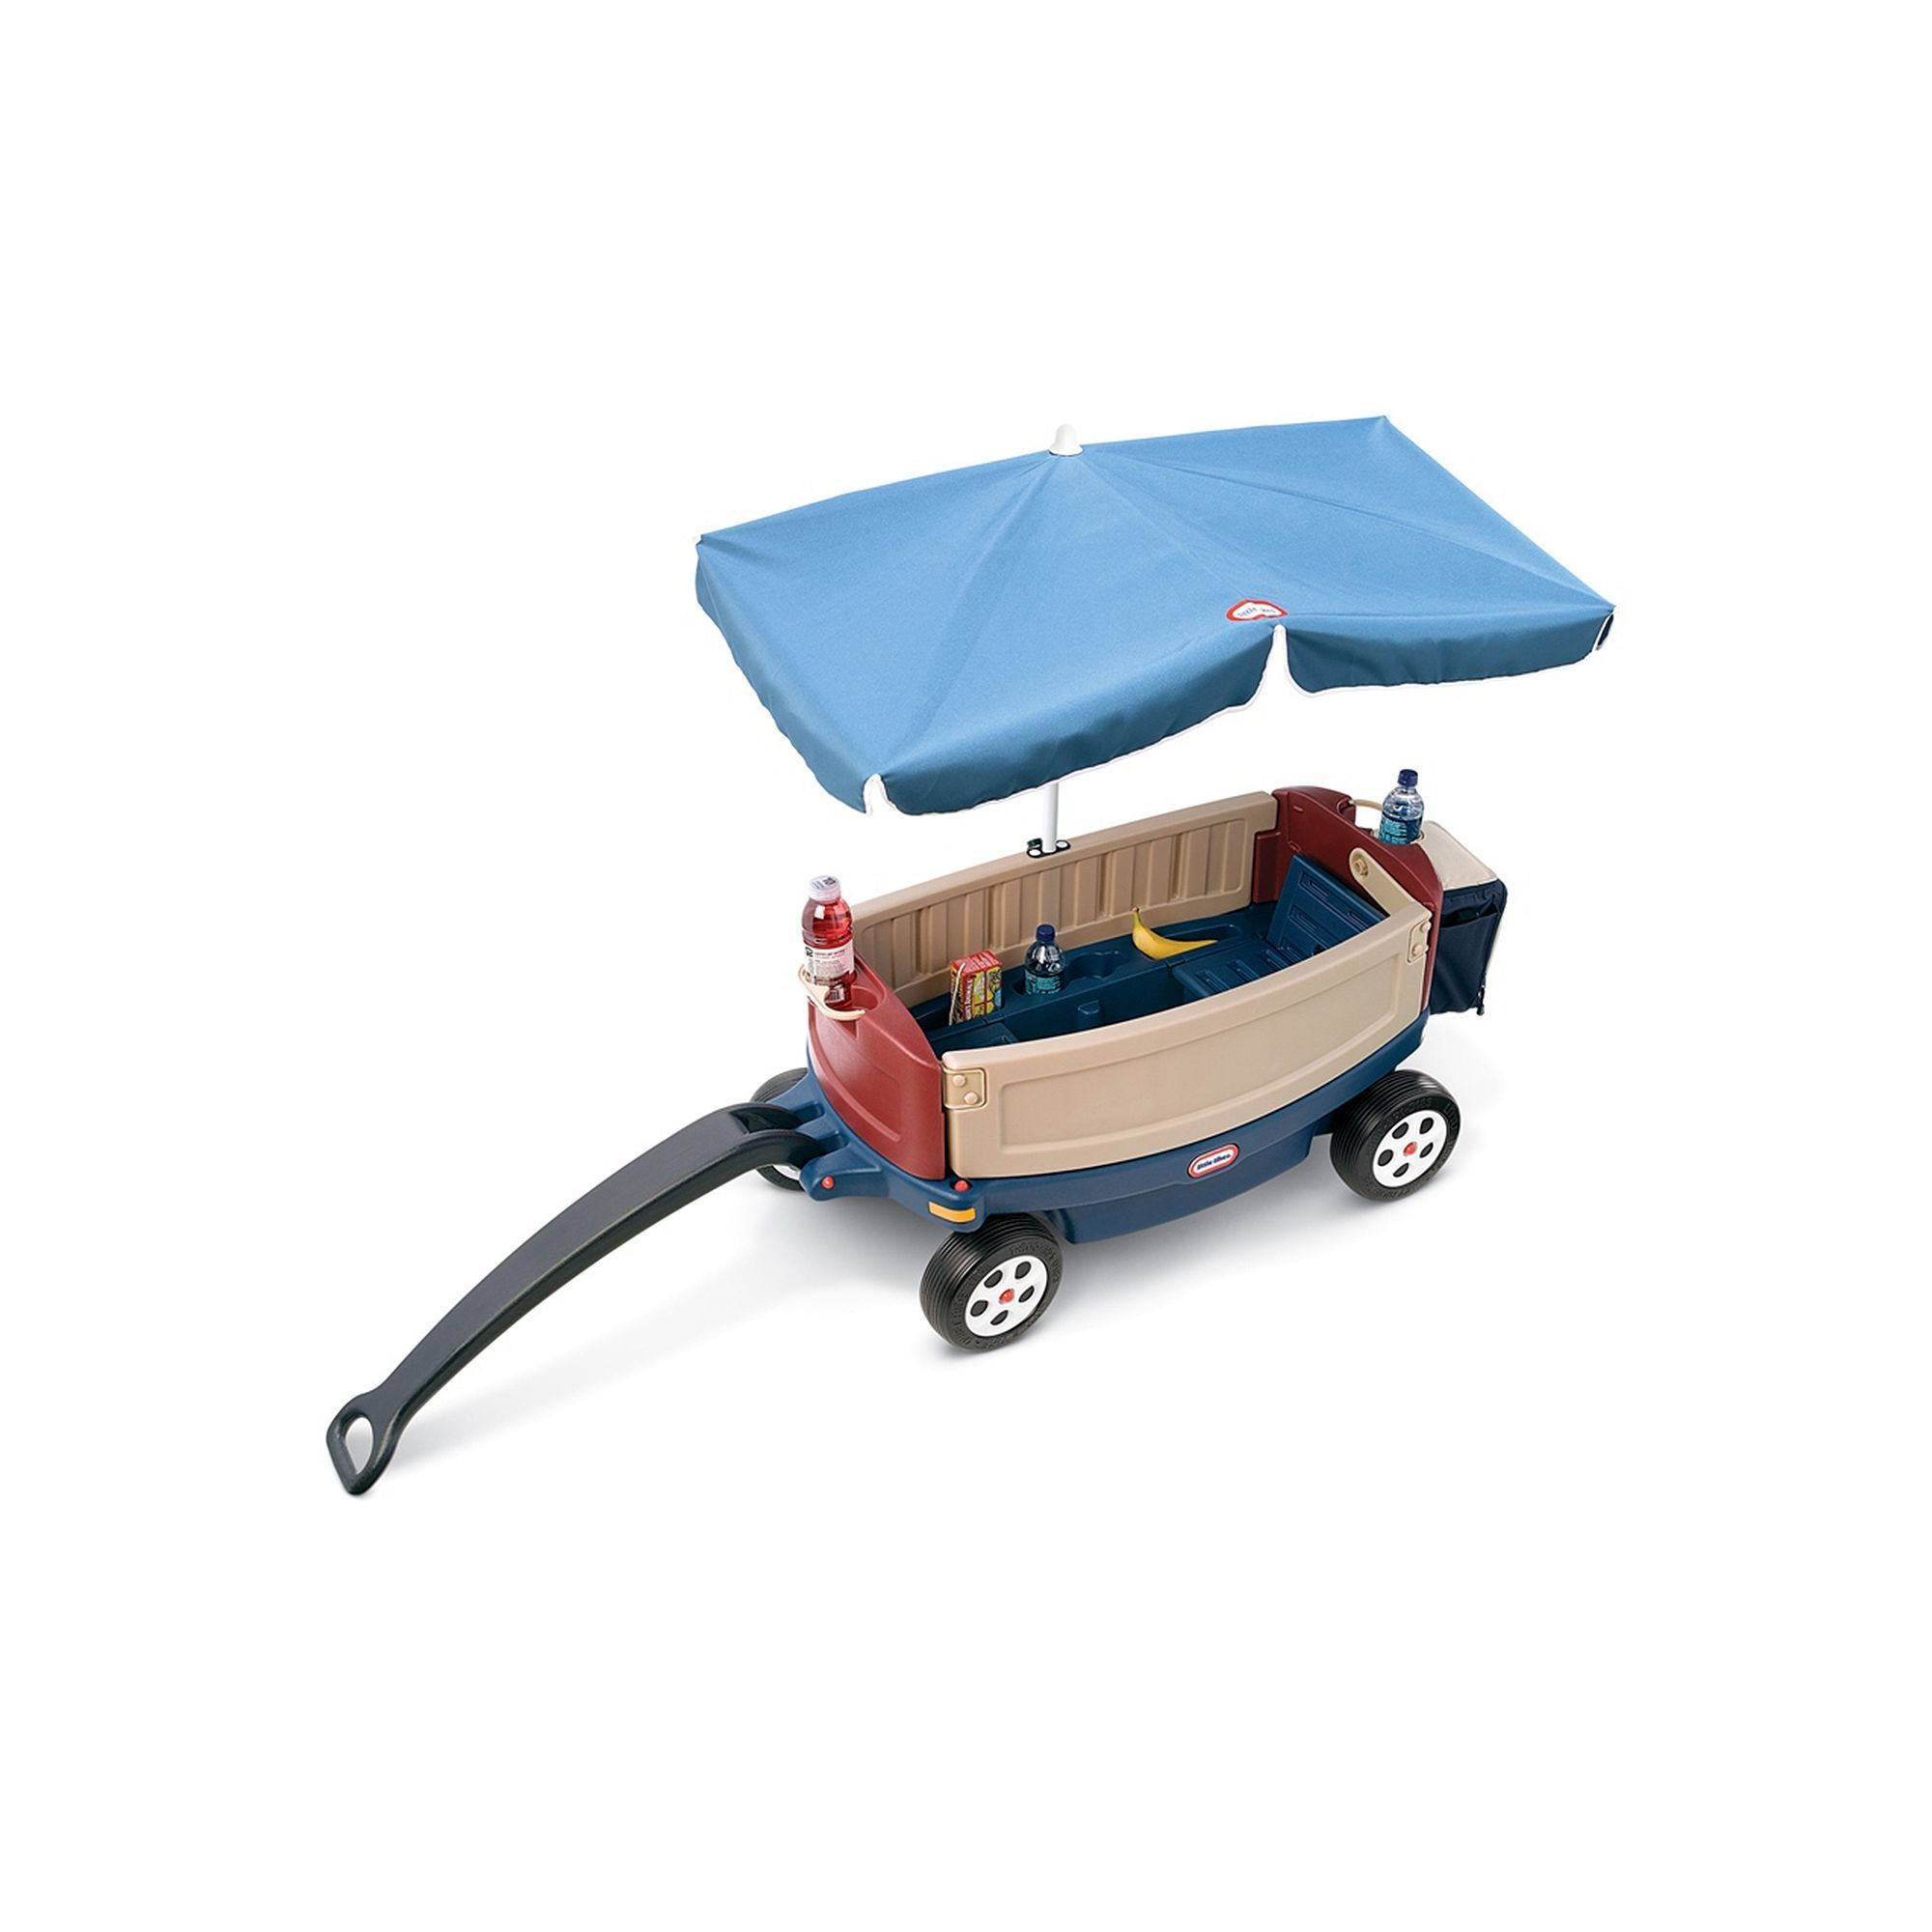 Little Tikes Deluxe Ride and Relax Wagon with Umbrella and Cooler Other Clrs